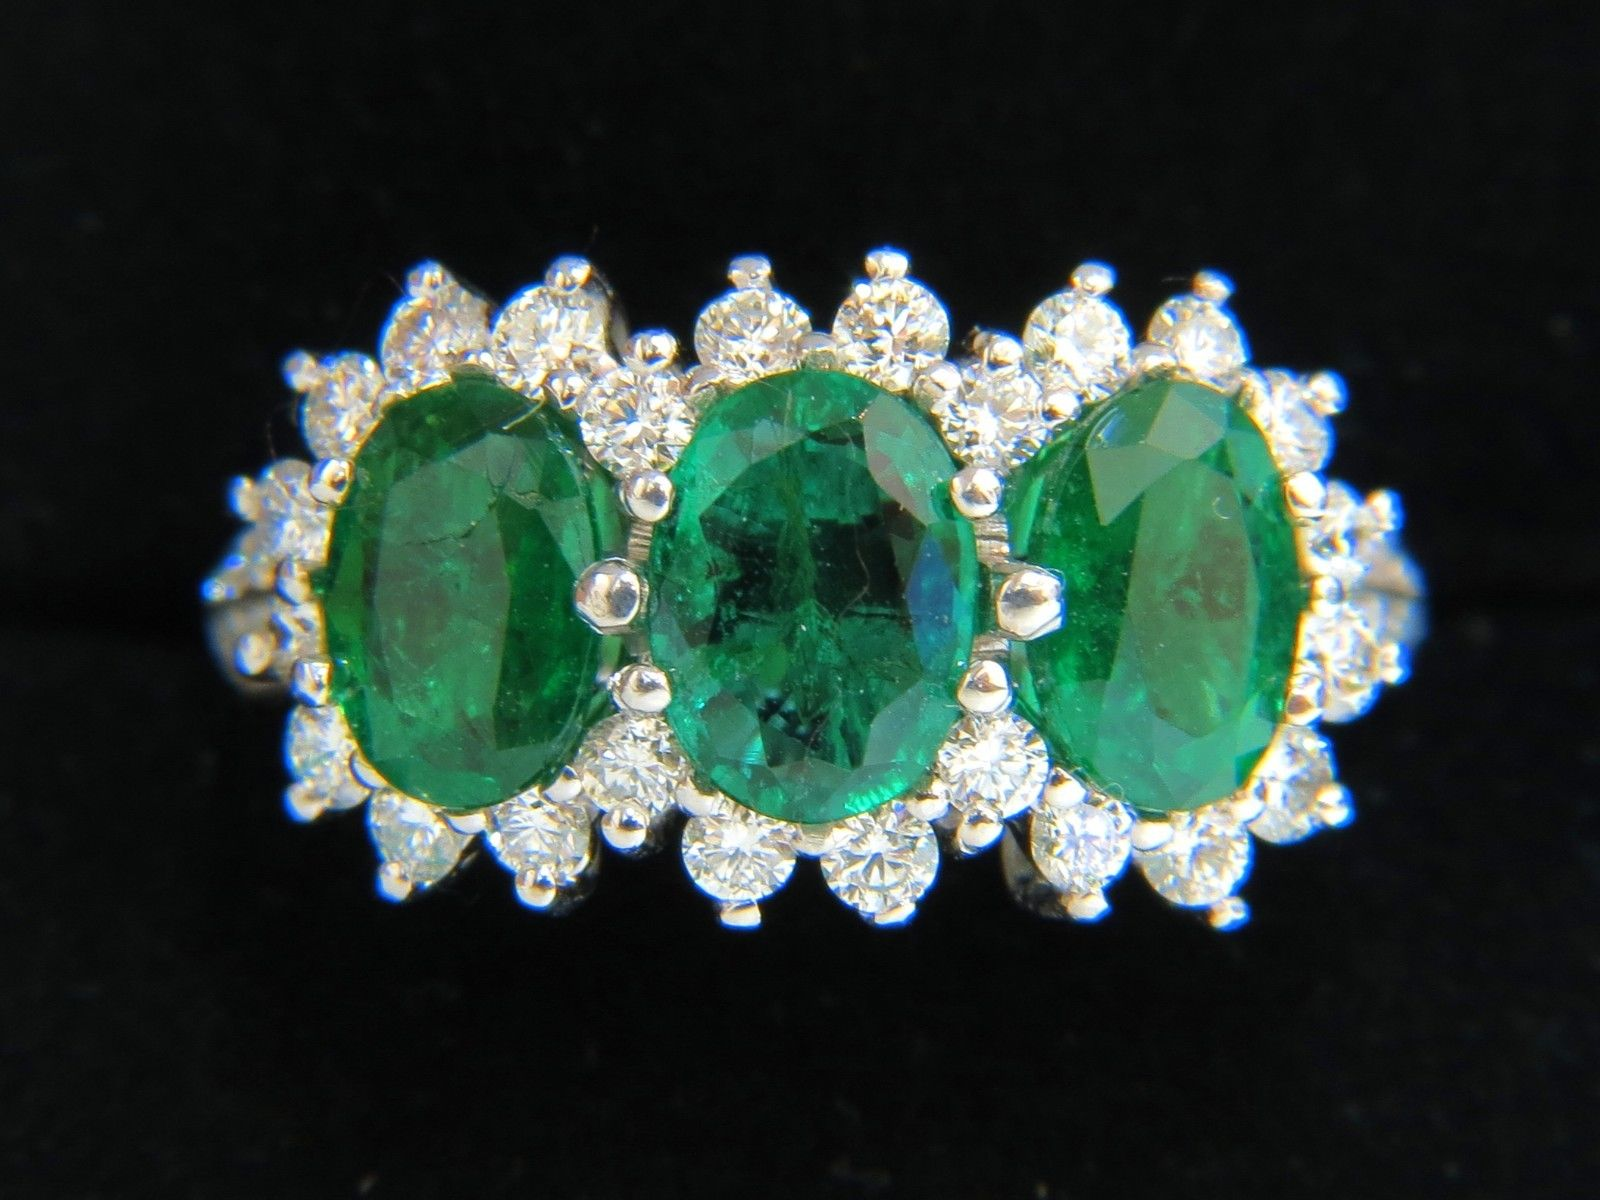 Diamond Cocktail Rings 0.80Ct Emerald 2.46Ct Solid White Gold Natural Certified